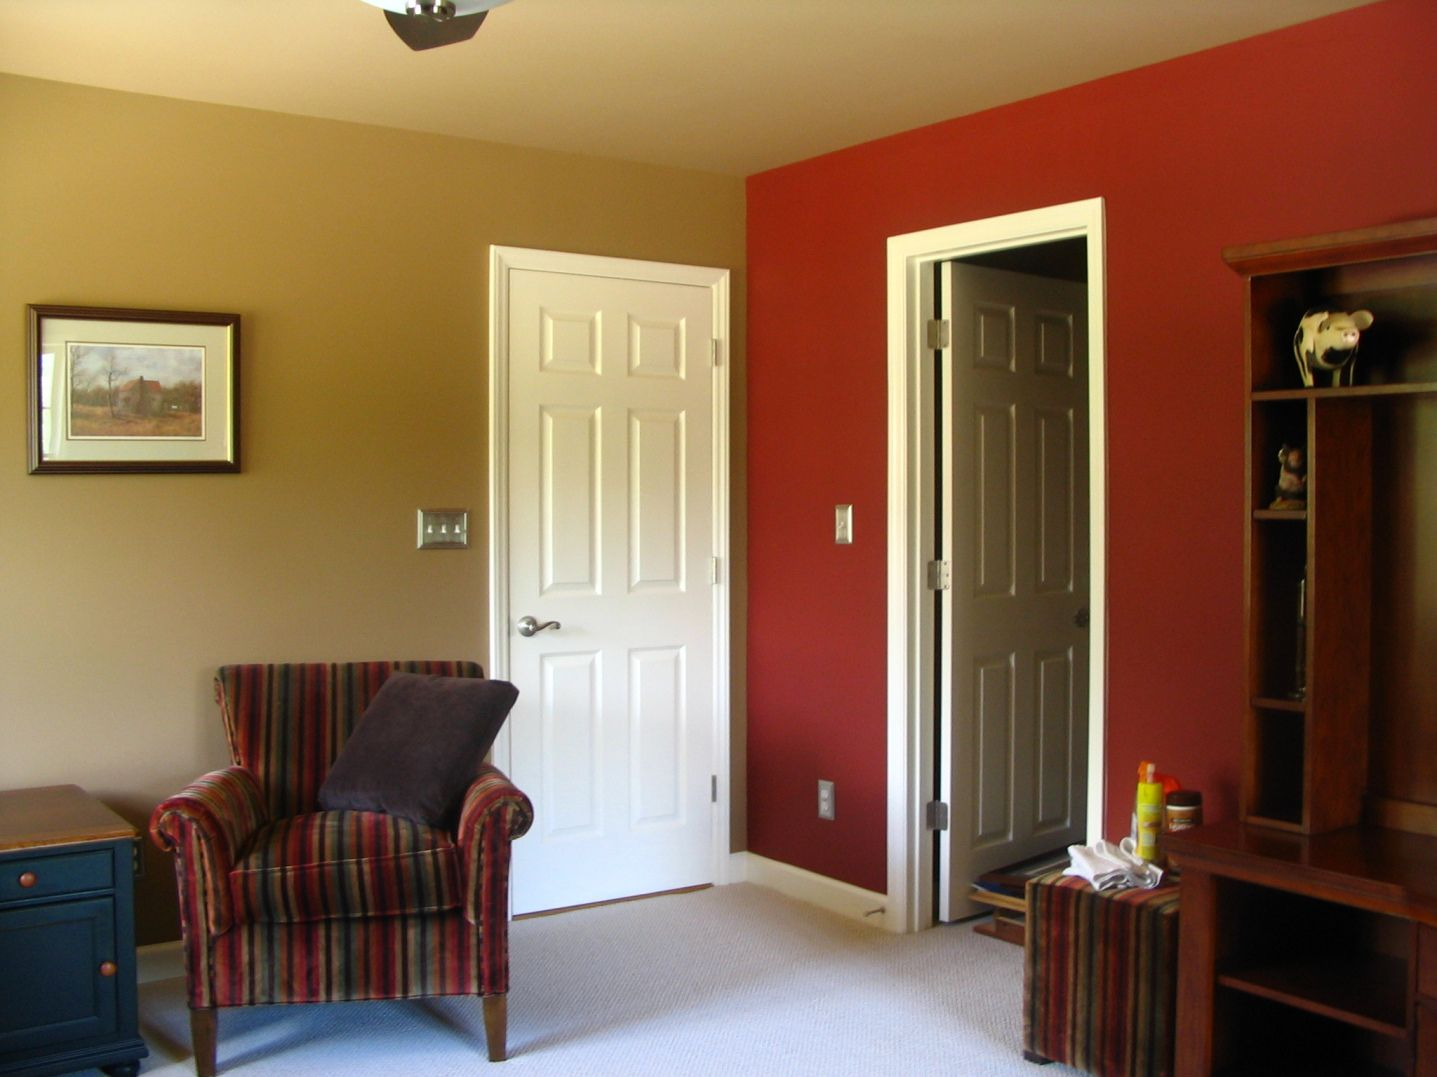 How To Paint Bedroom Walls Two Diffe Colors Decorating Ideas On A Budget Check